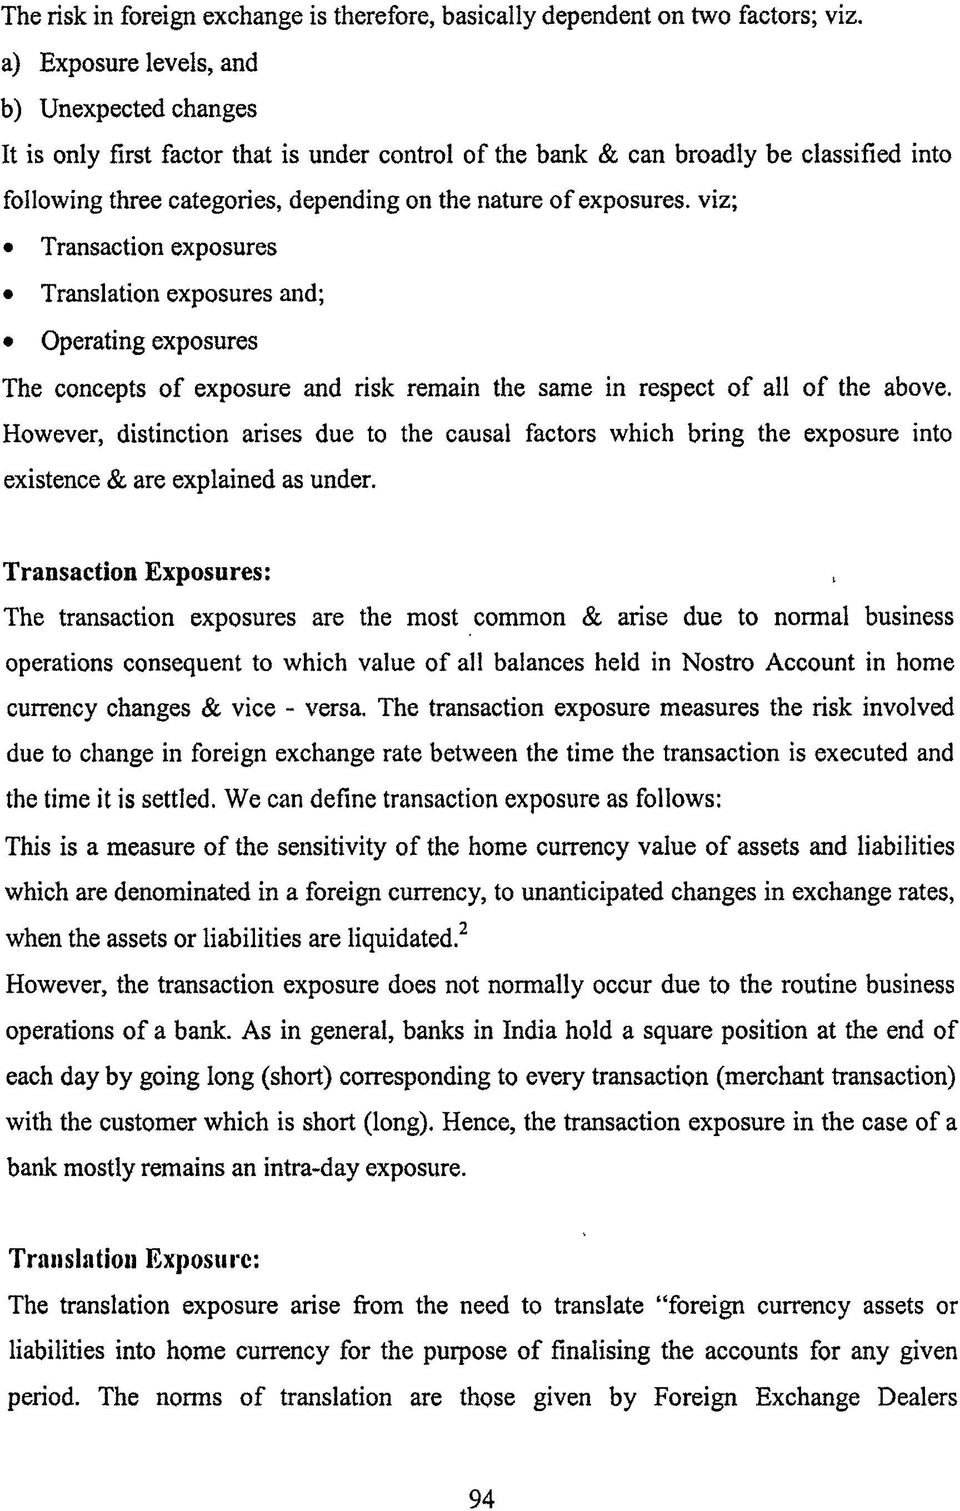 exposures, viz; Transaction exposures Translation exposures and; Operating exposures The concepts of exposure and risk remain the same in respect of all of the above.